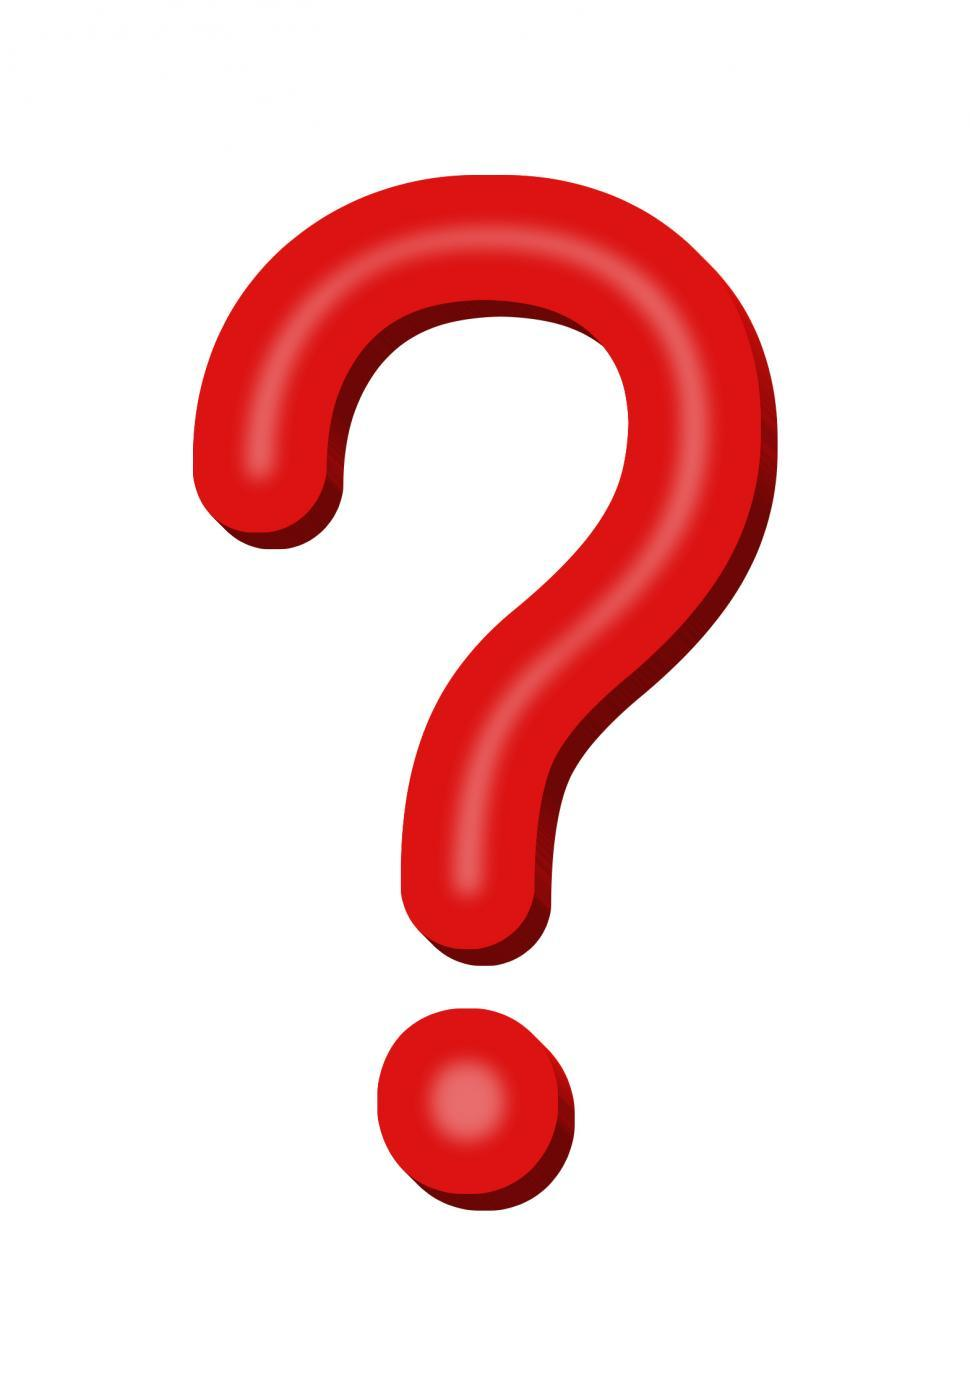 Download Free Stock HD Photo of Red Question Mark Online